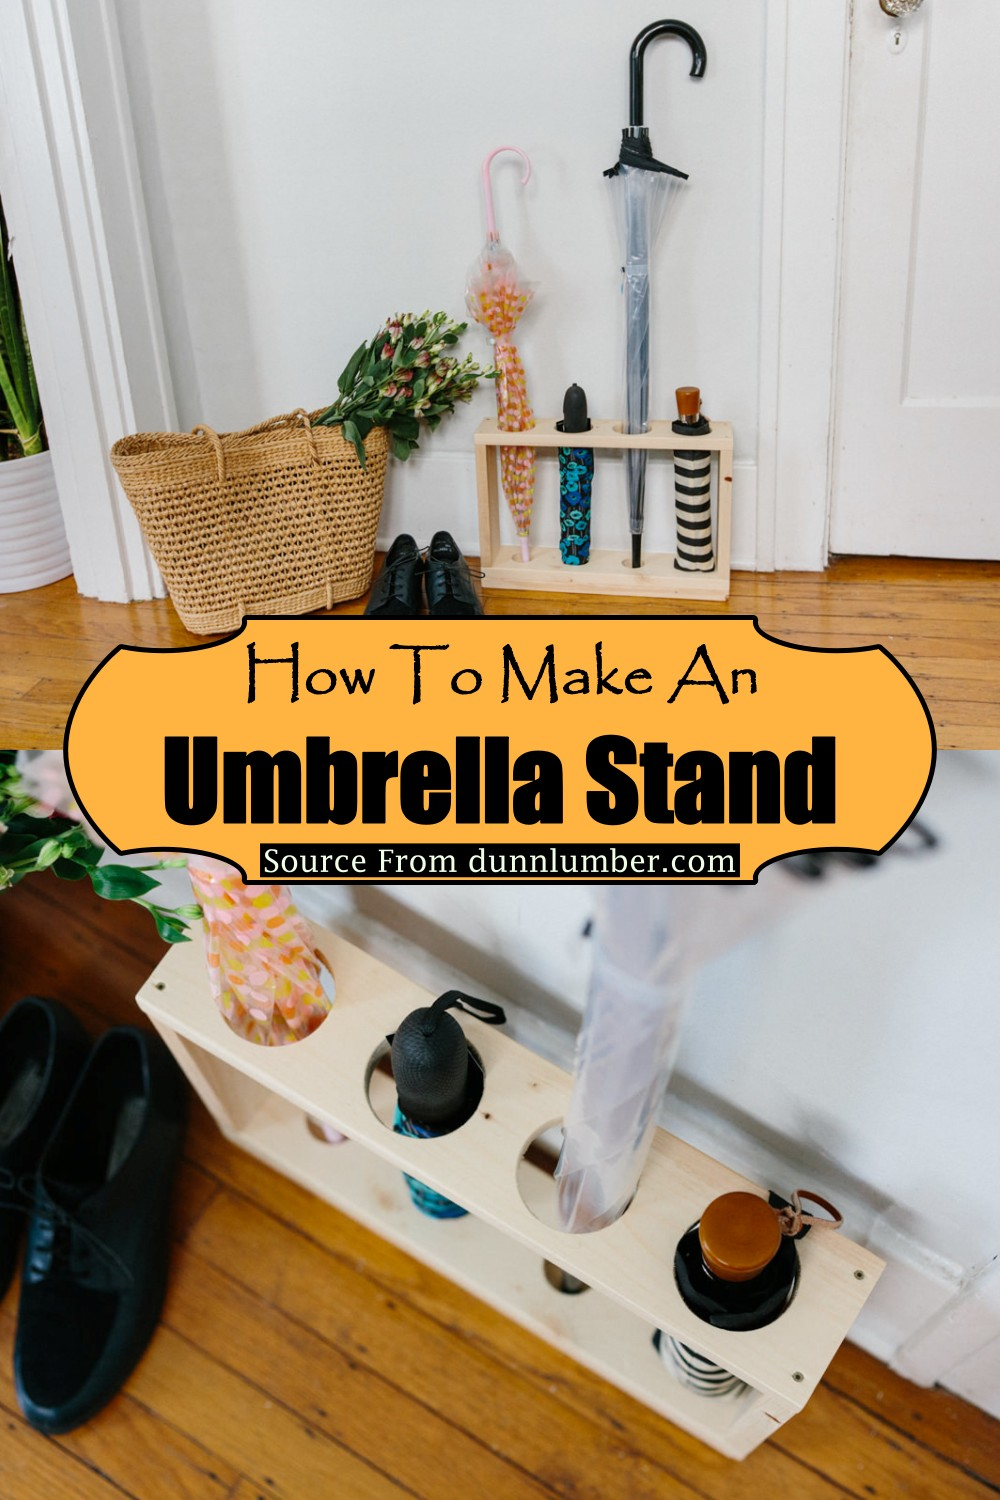 How To Make An Umbrella Stand